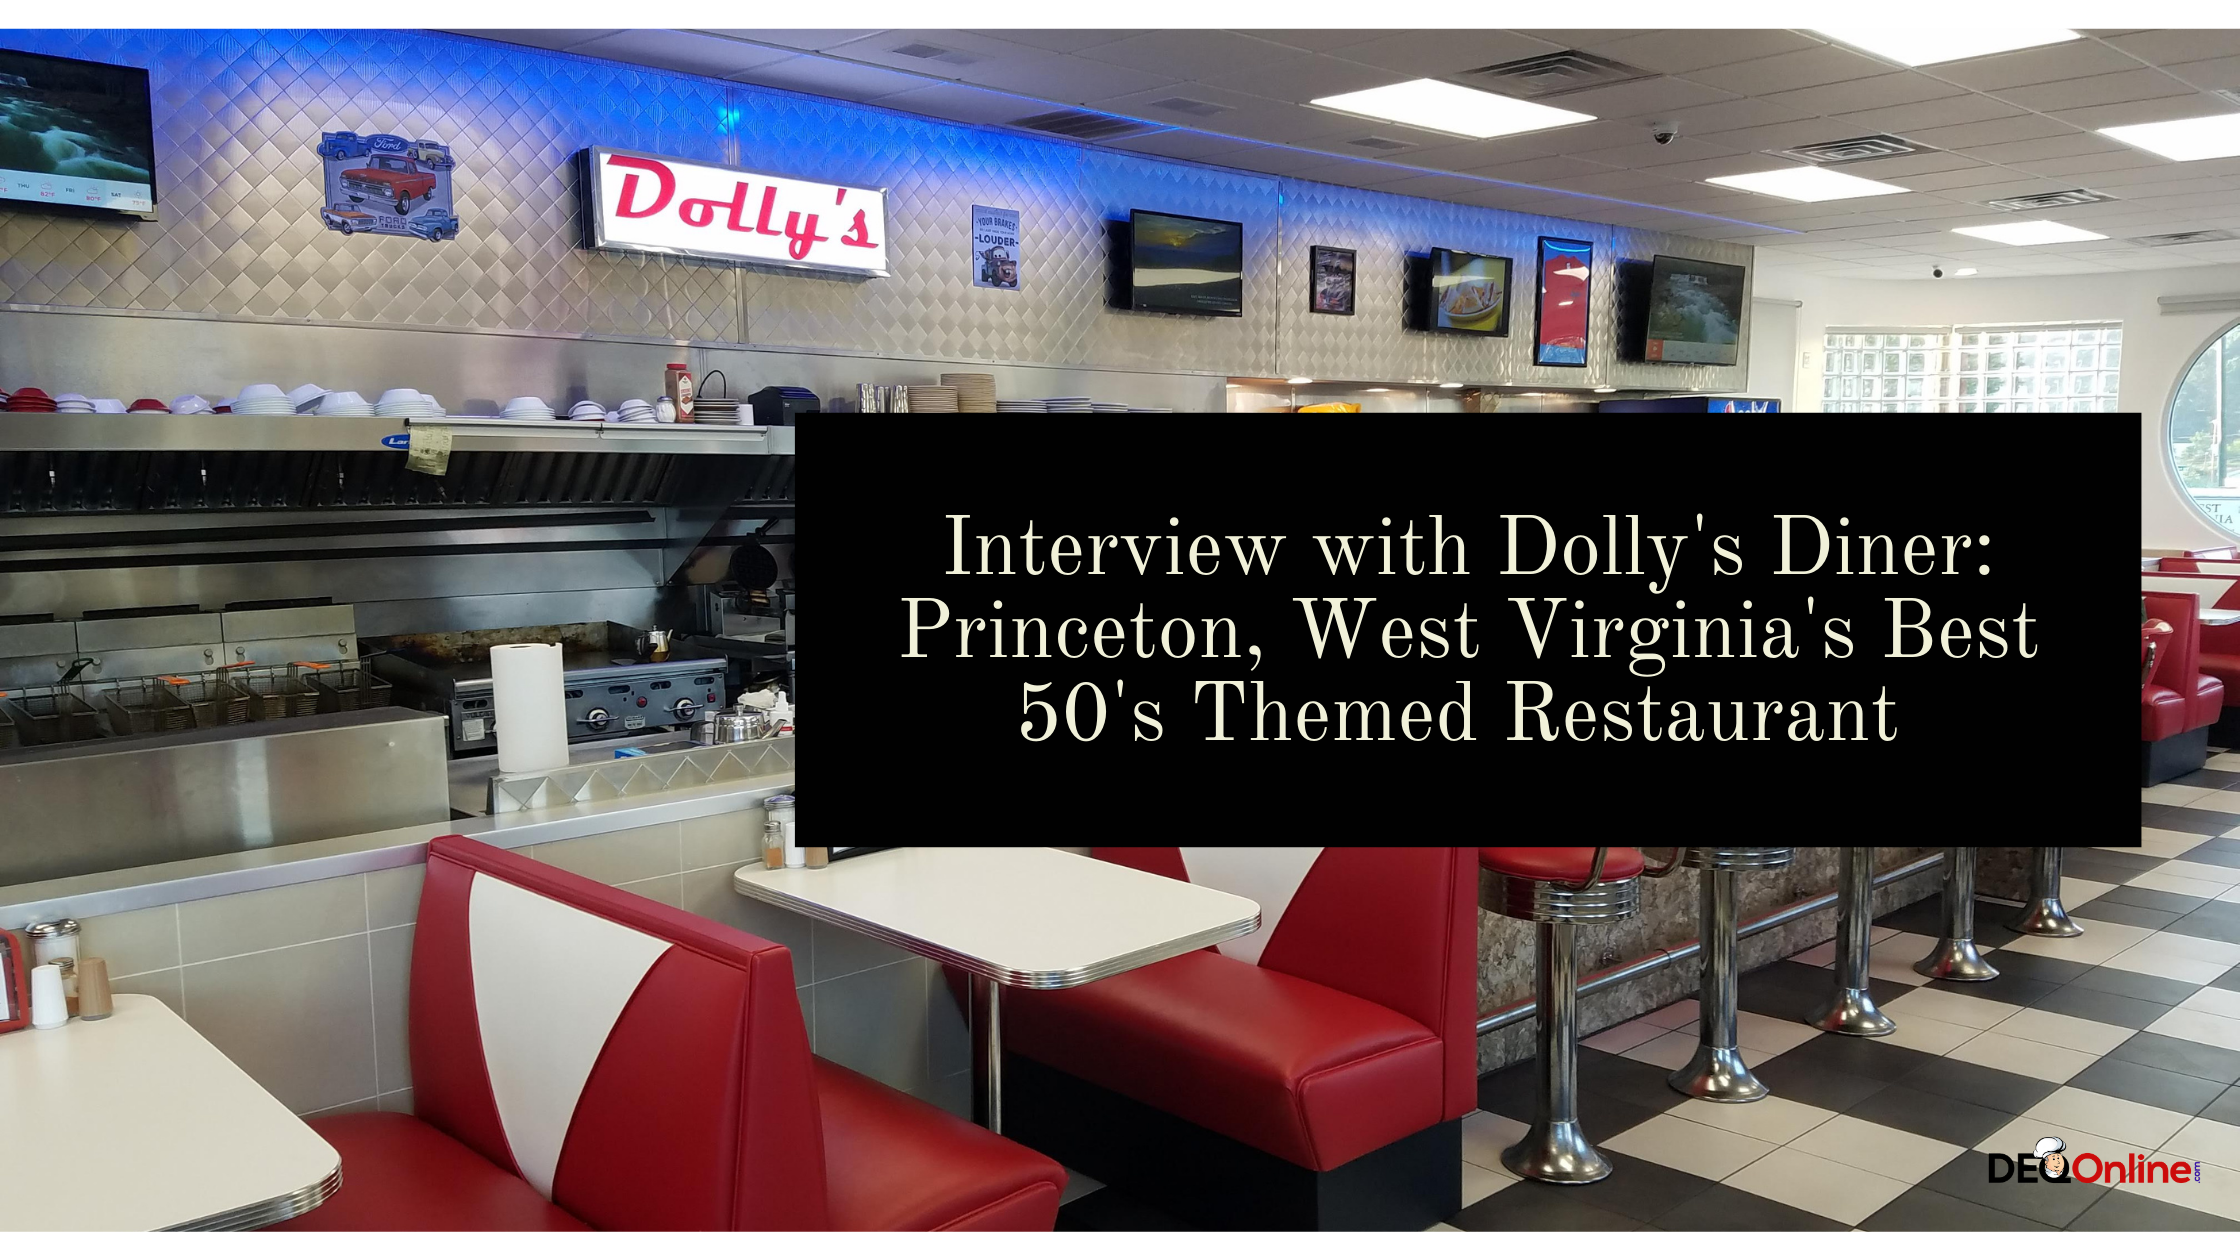 Interview with Dolly's Diner: Princeton, West Virginia's Best 50's Themed Restaurant